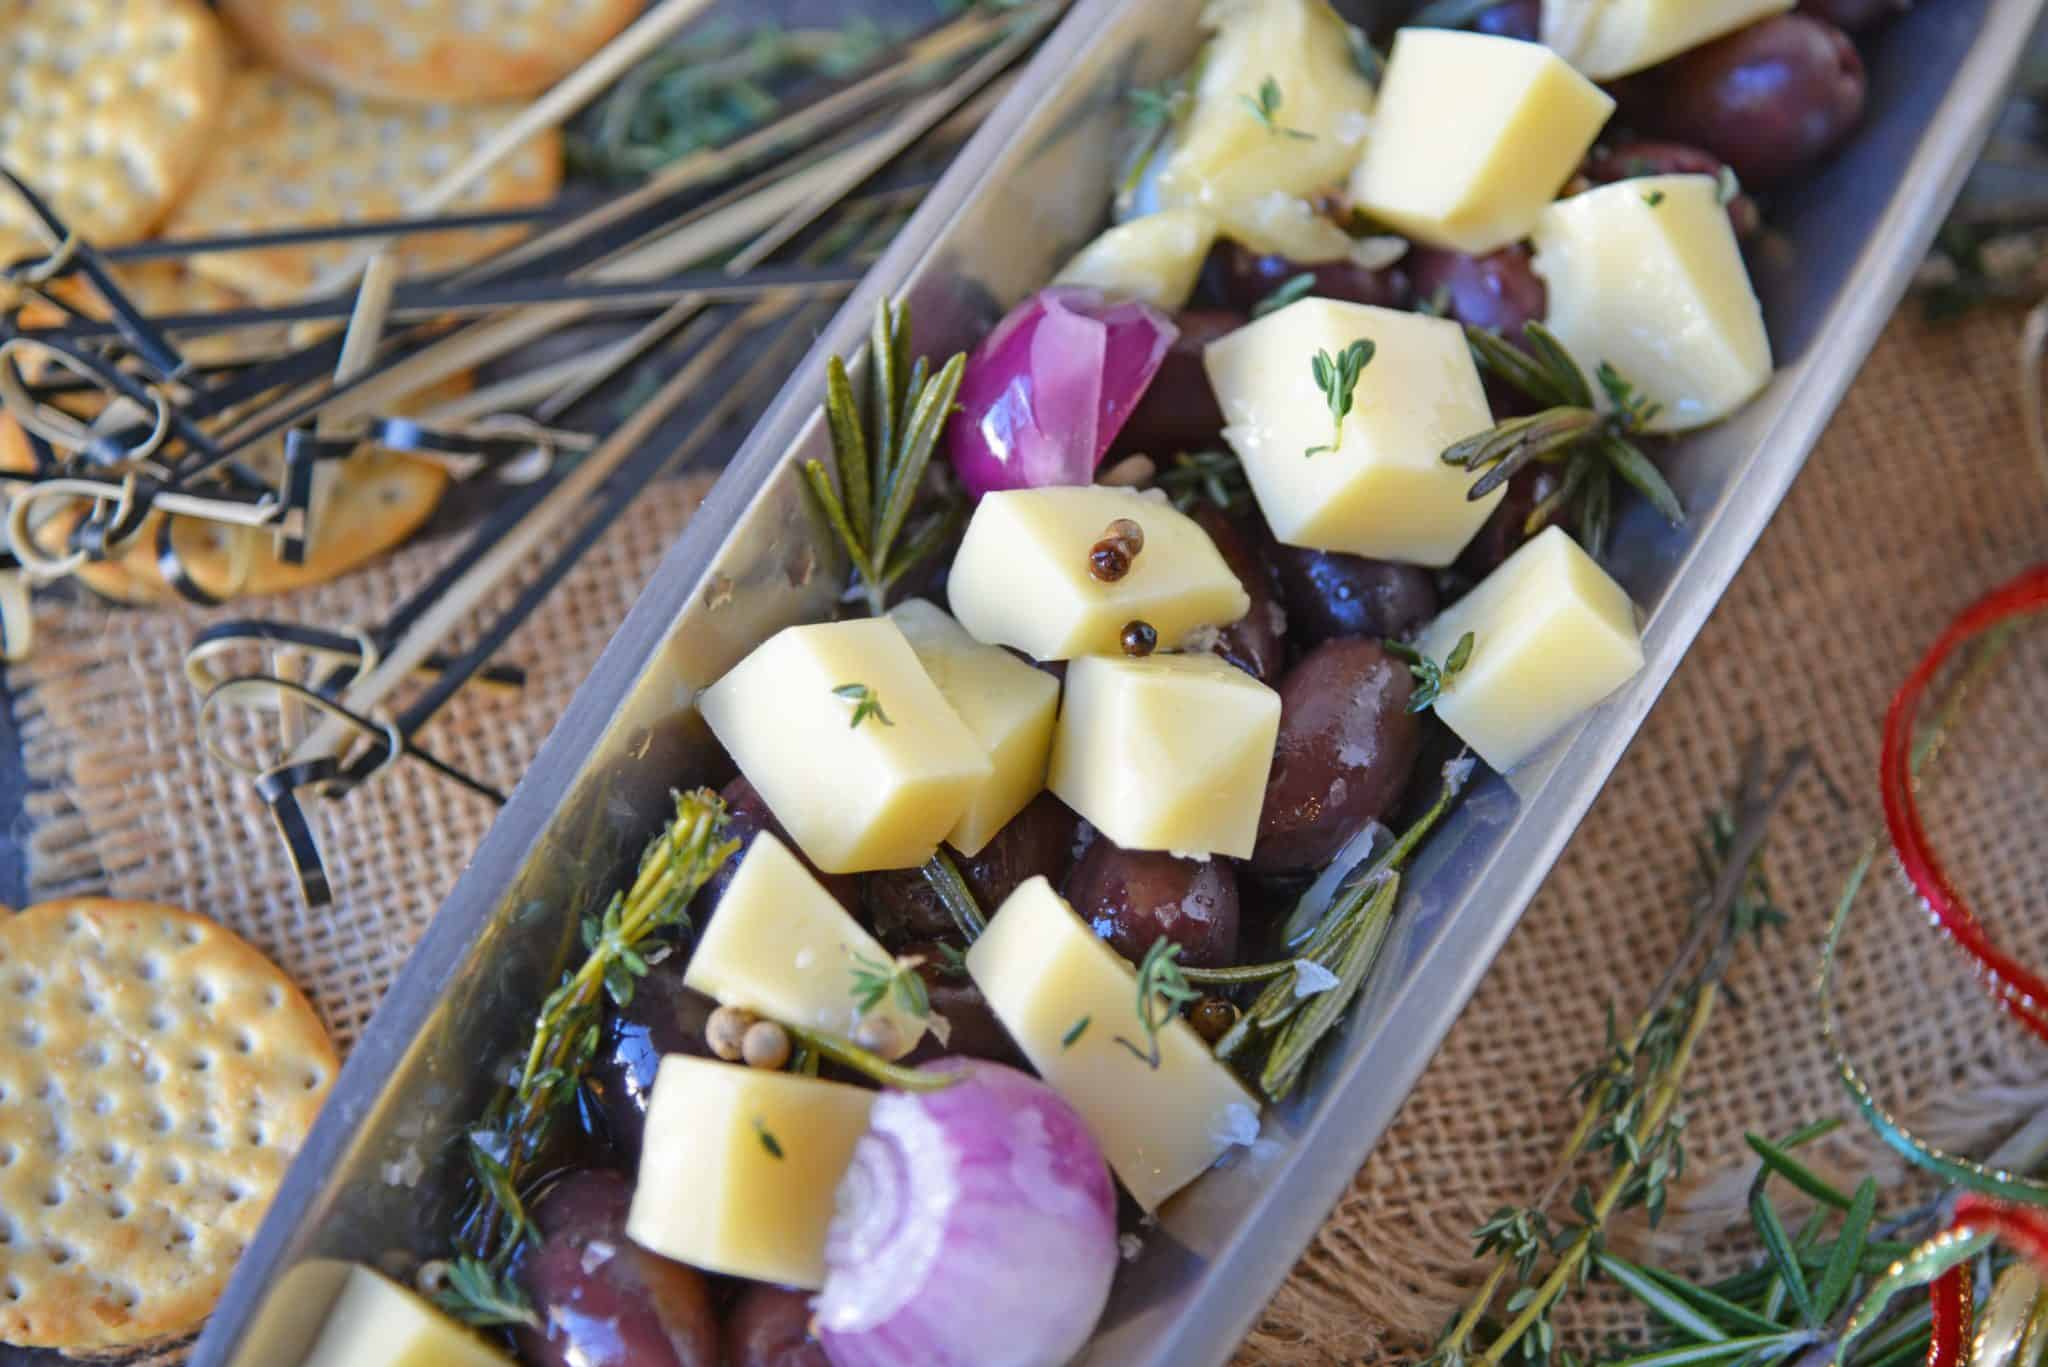 Marinated Cheese is the perfect hostess or homemade holiday gift. Simple and tasty, it also makes an easy party appetizer! #marinatedcheese #easypartyappetizers #homemadegifts www.savoryexperiments.com